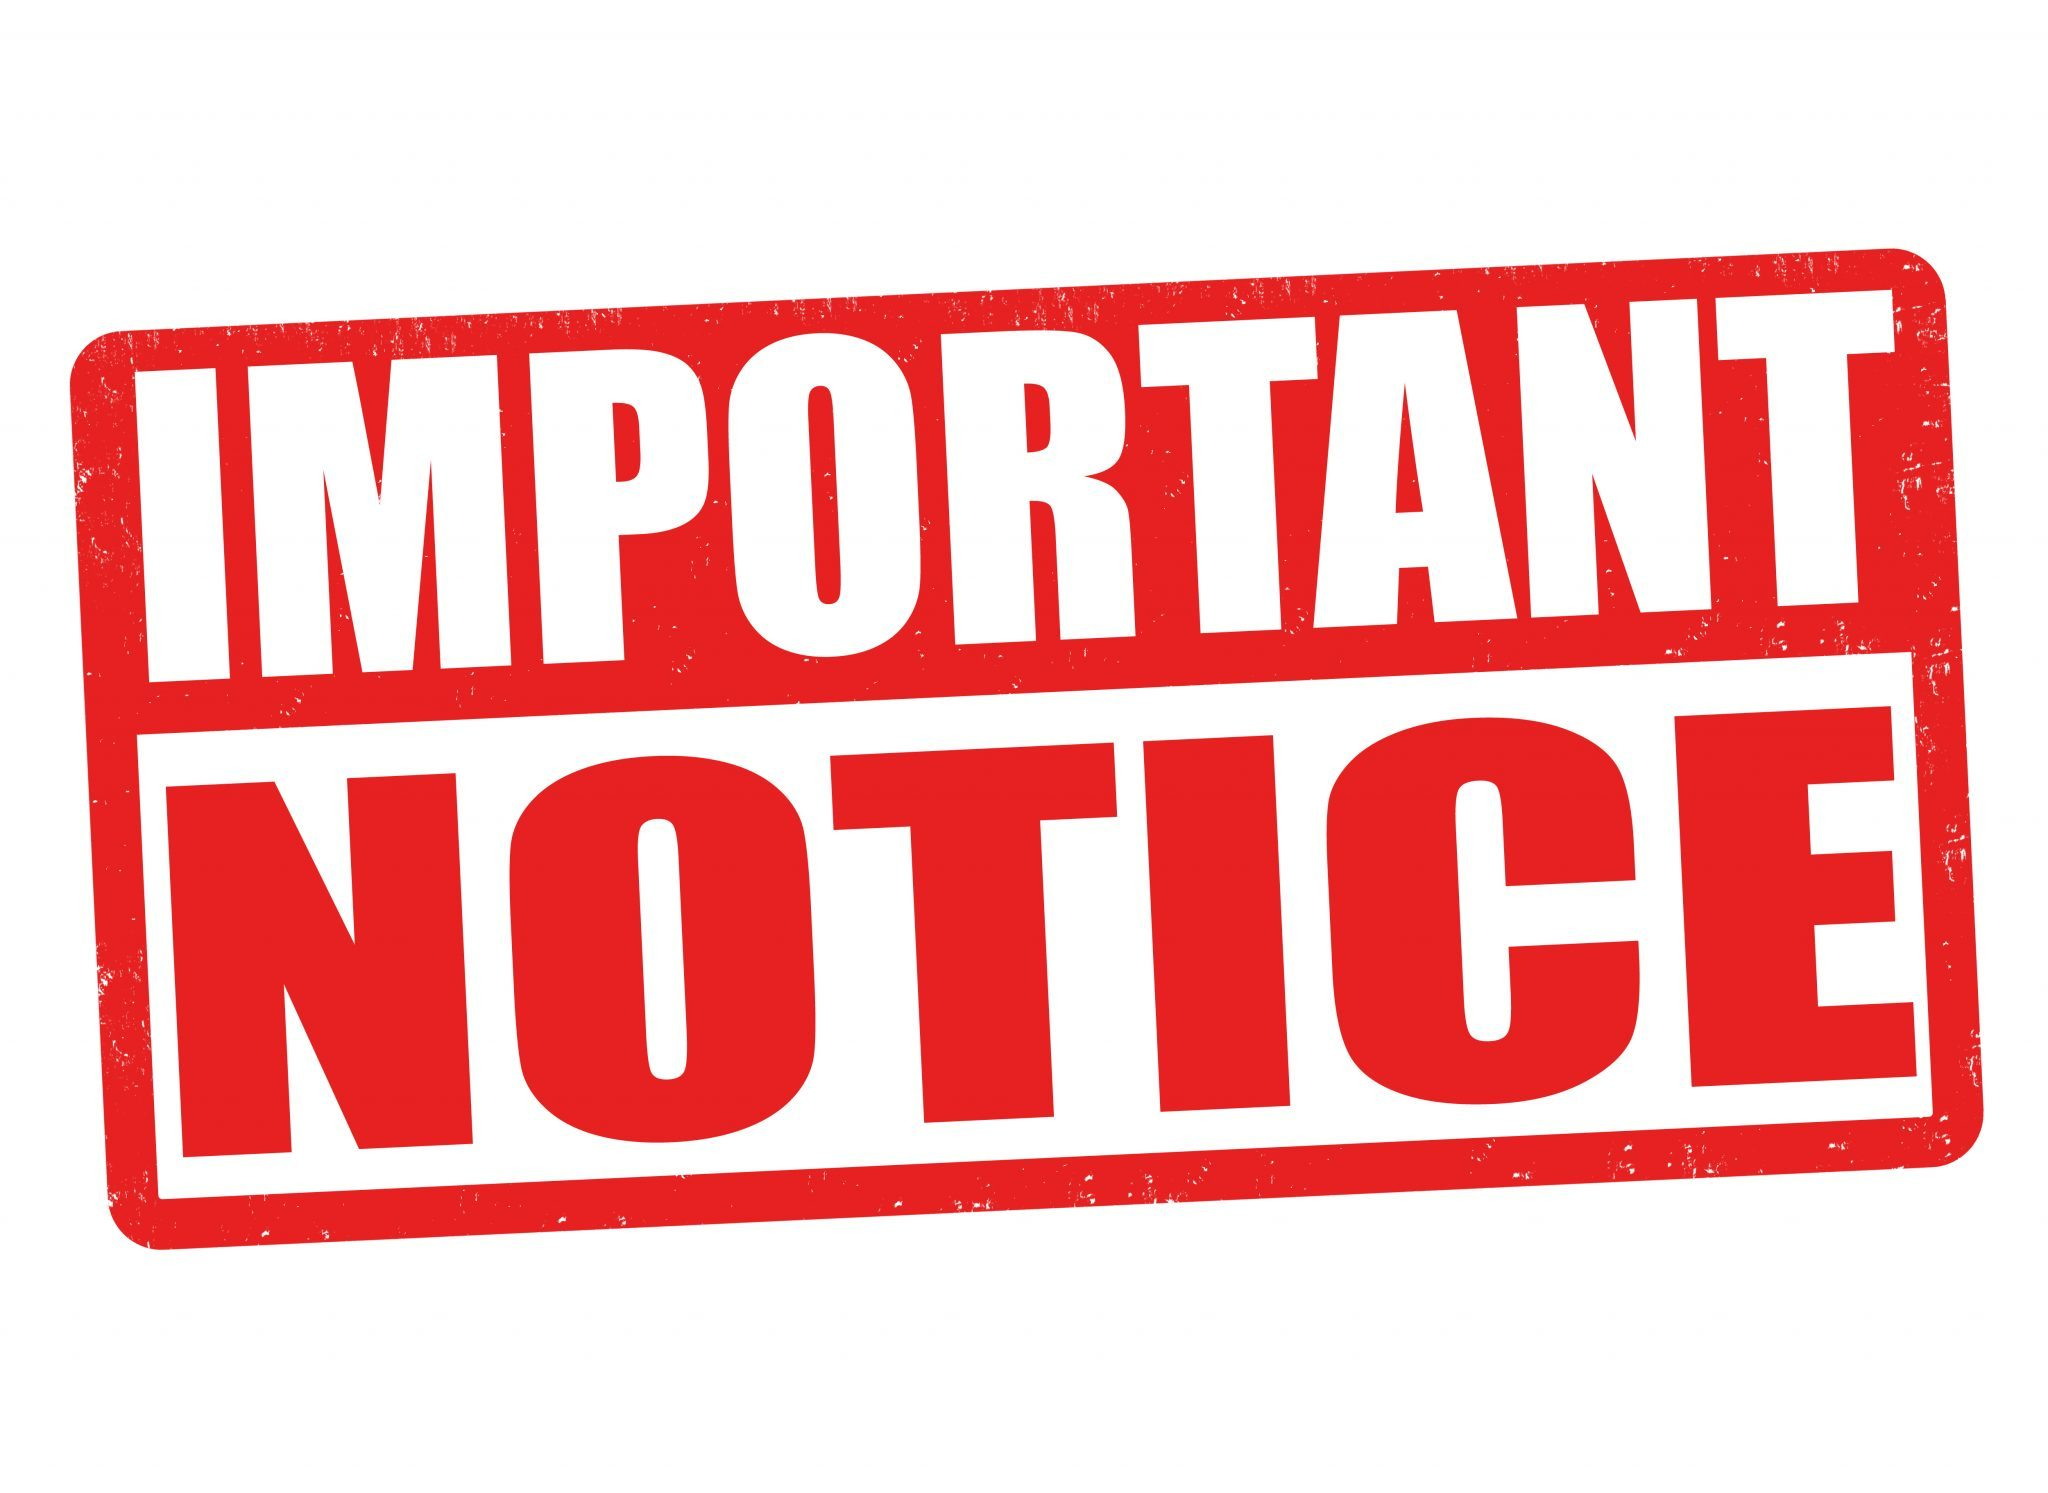 images/important-notice.jpg